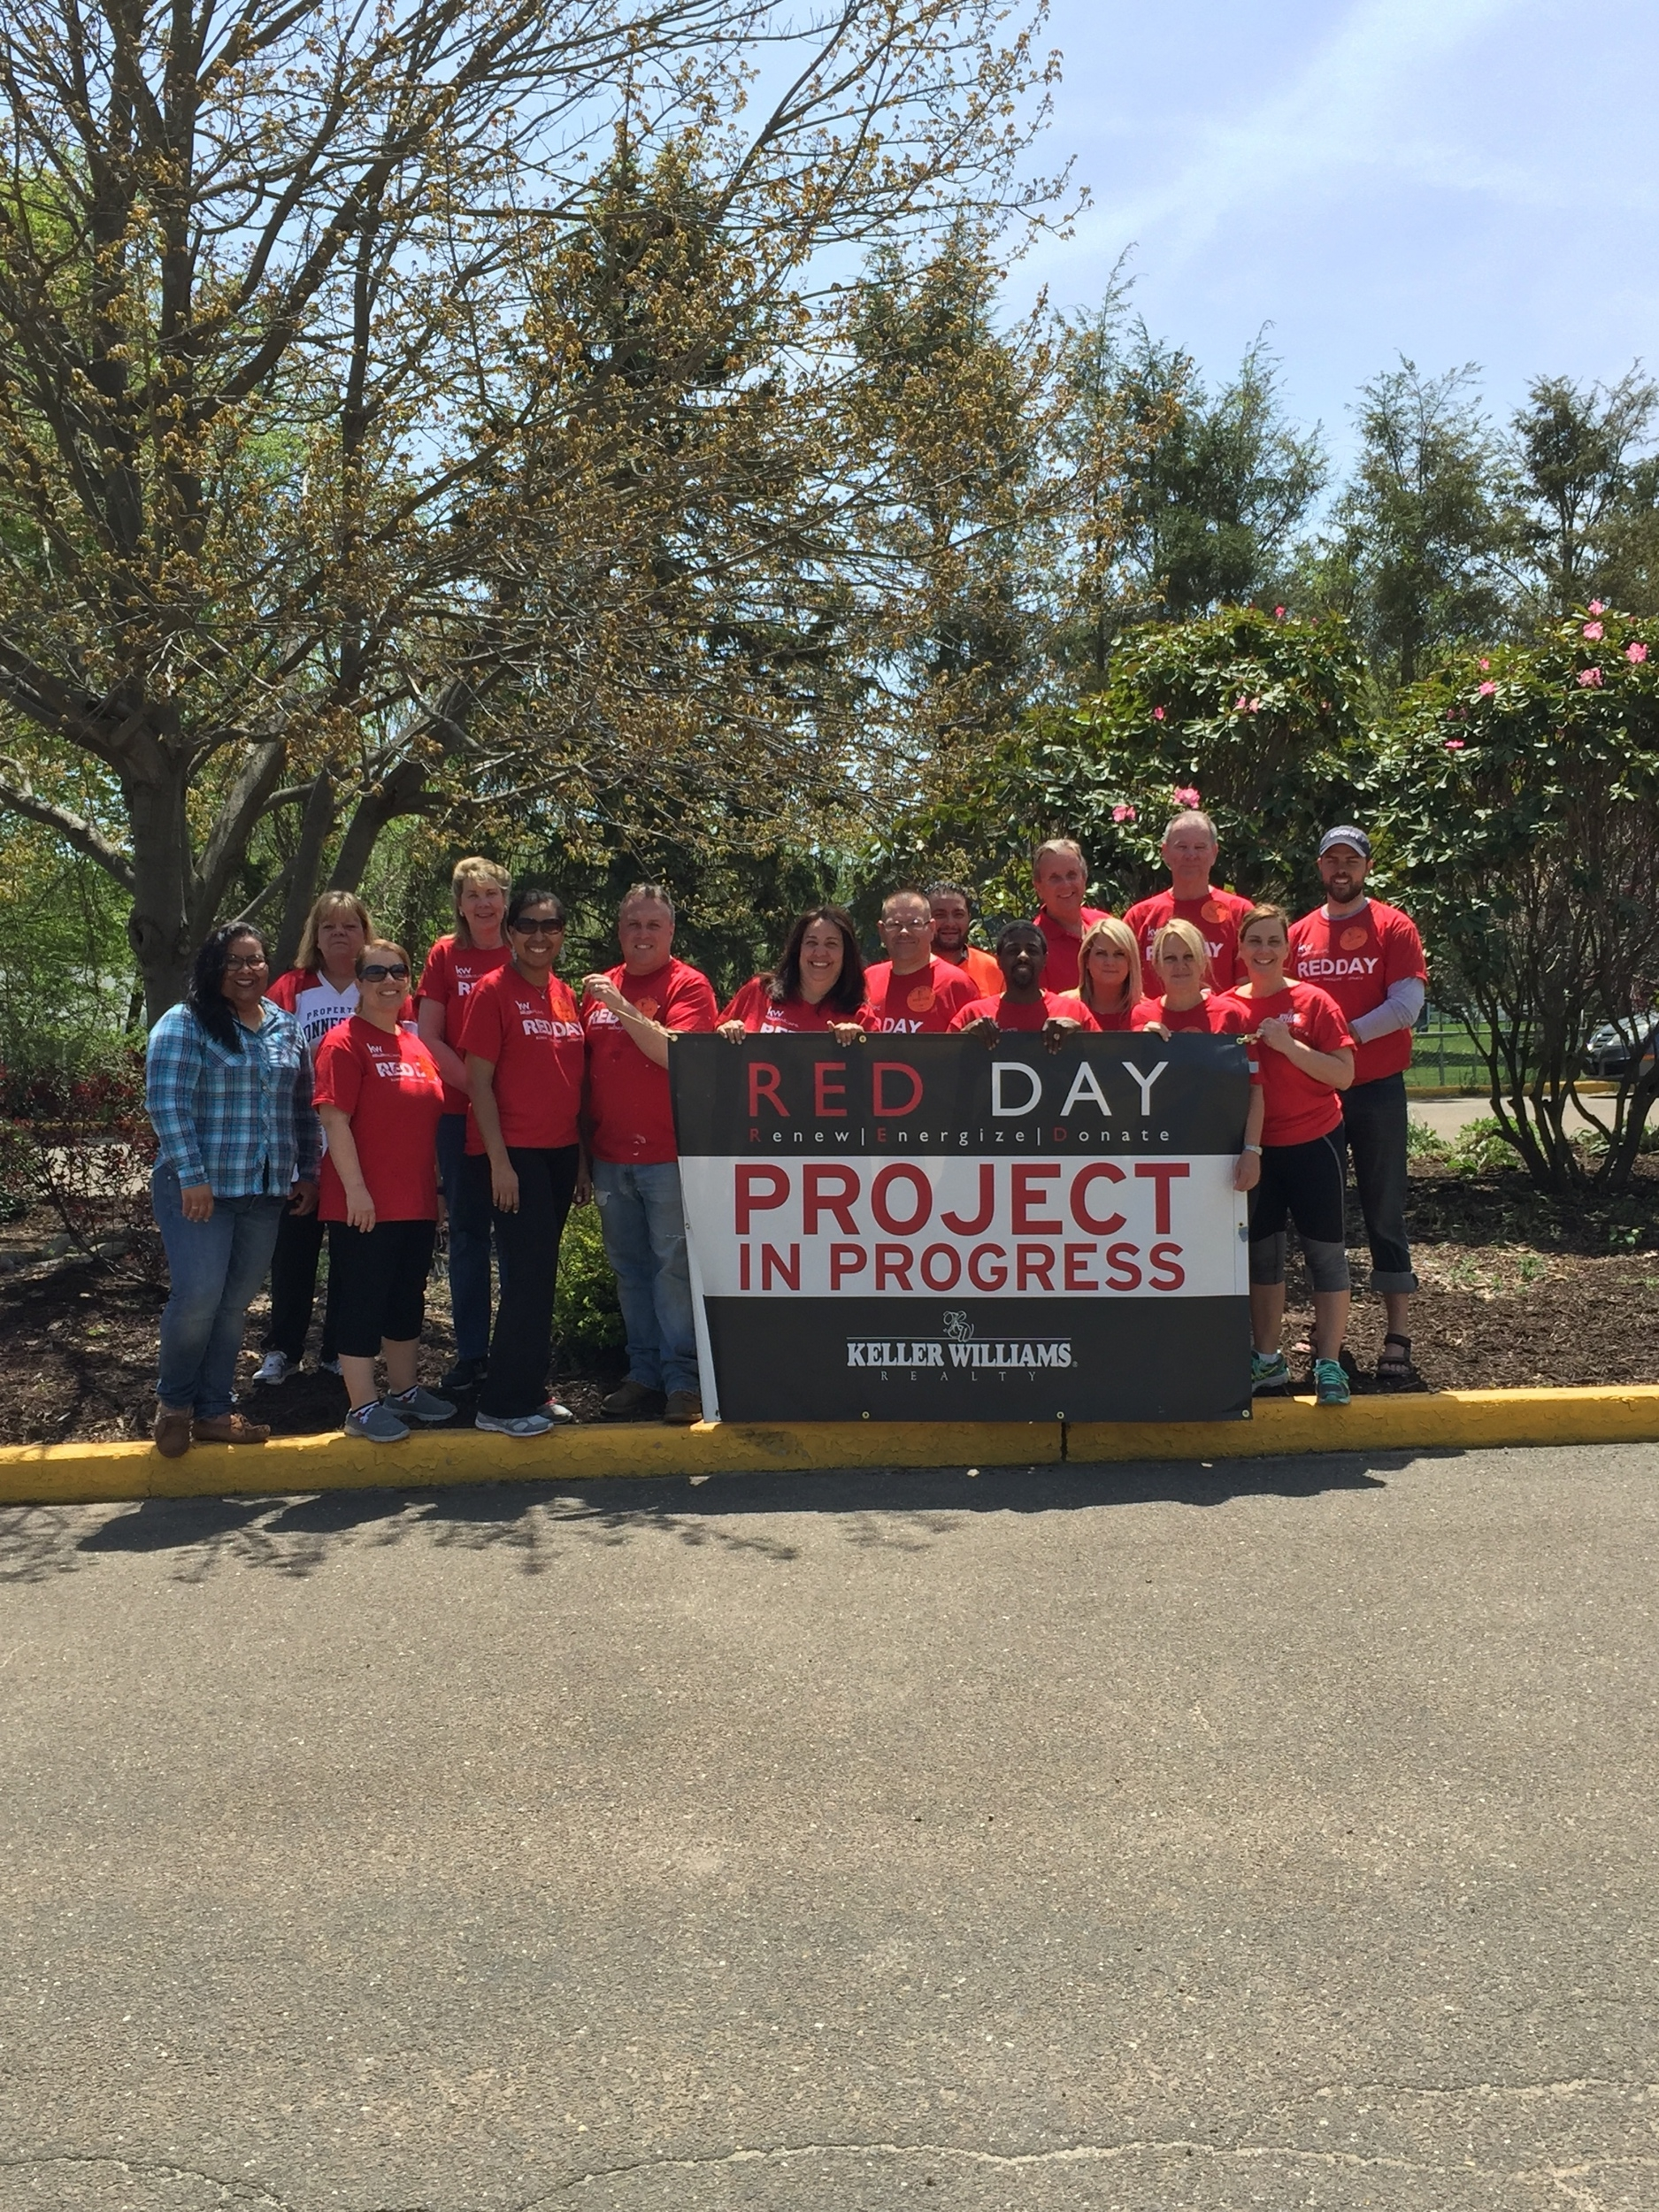 "Associates from the Trumbull office of Keller Williams Realty spent the day at Daniels Farm School last Thursday as part of their annual ""RED Day,"" helping to clean up and beautify the grounds.   RED Day    (Renew, Energize and Donate) is an initiative dedicated to celebrating Keller Williams Realty's year-round commitment to improving local communities. Each year, on the second Thursday in May, tens of thousands of associates from across the United States and Canada participate in a wide range of projects, devoting time to renewing and energizing aspects of the neighborhoods in which they serve.  Thank you, Keller Williams Realty!"